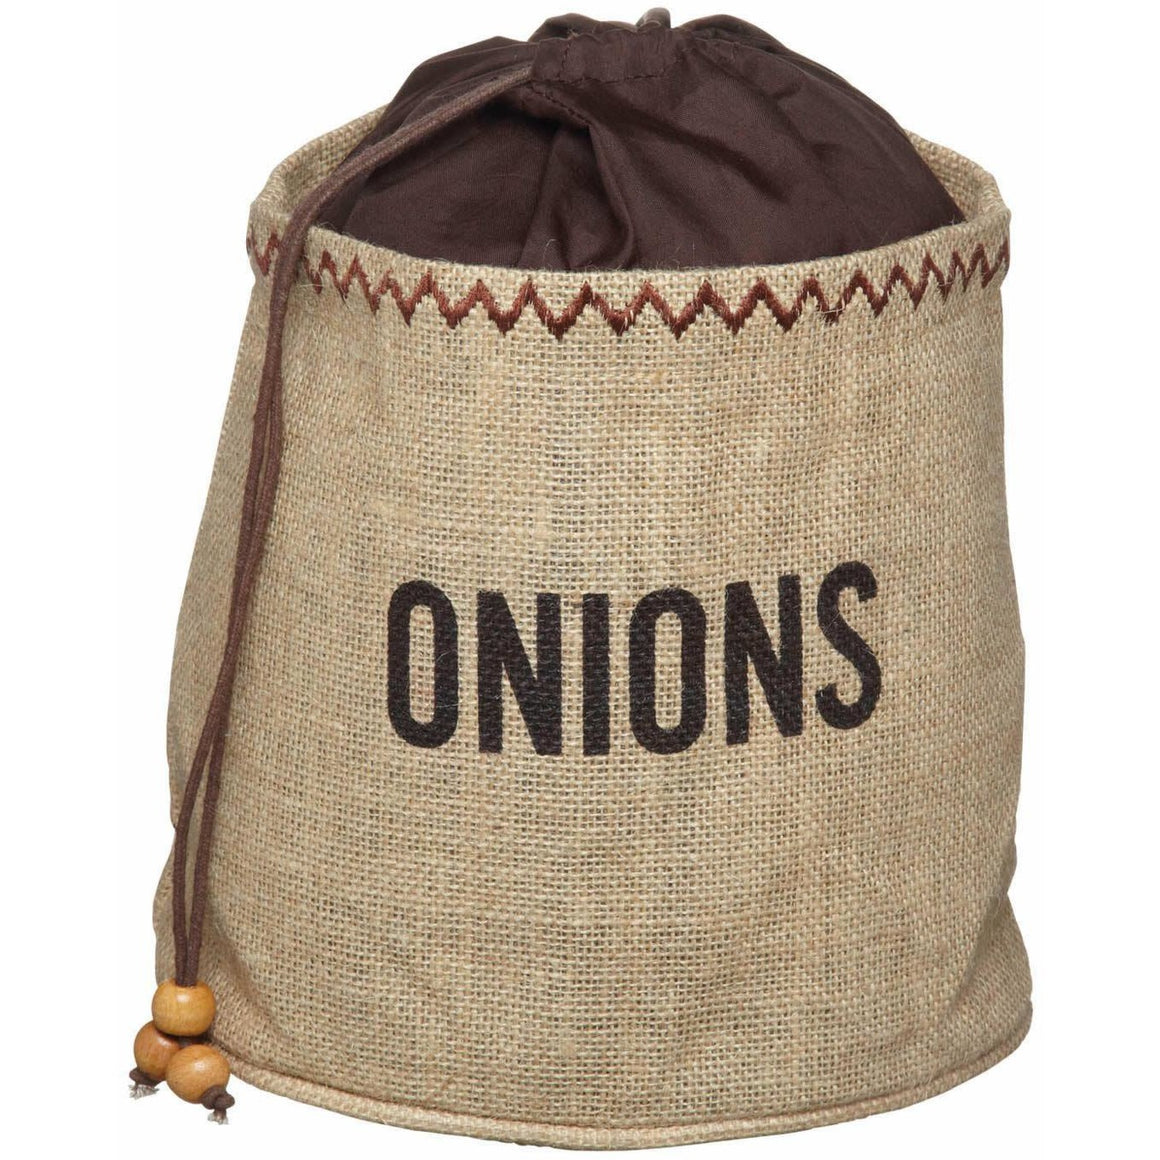 KitchenCraft Onion Sack